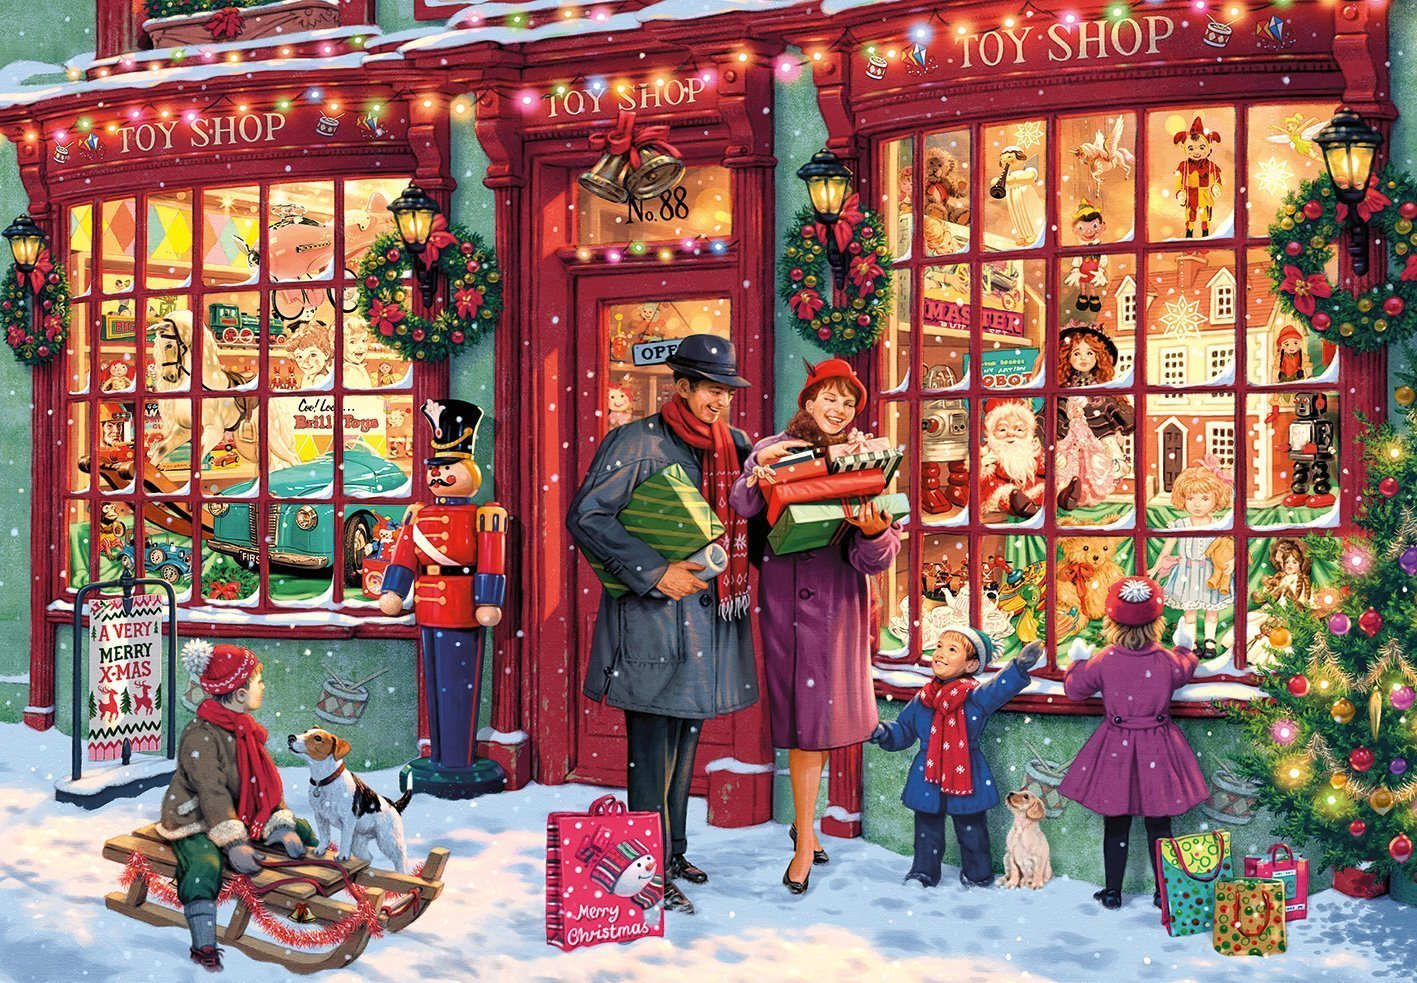 Christmas Toy Shop 2000 Piece Jigsaw Puzzle - All Jigsaw Puzzles